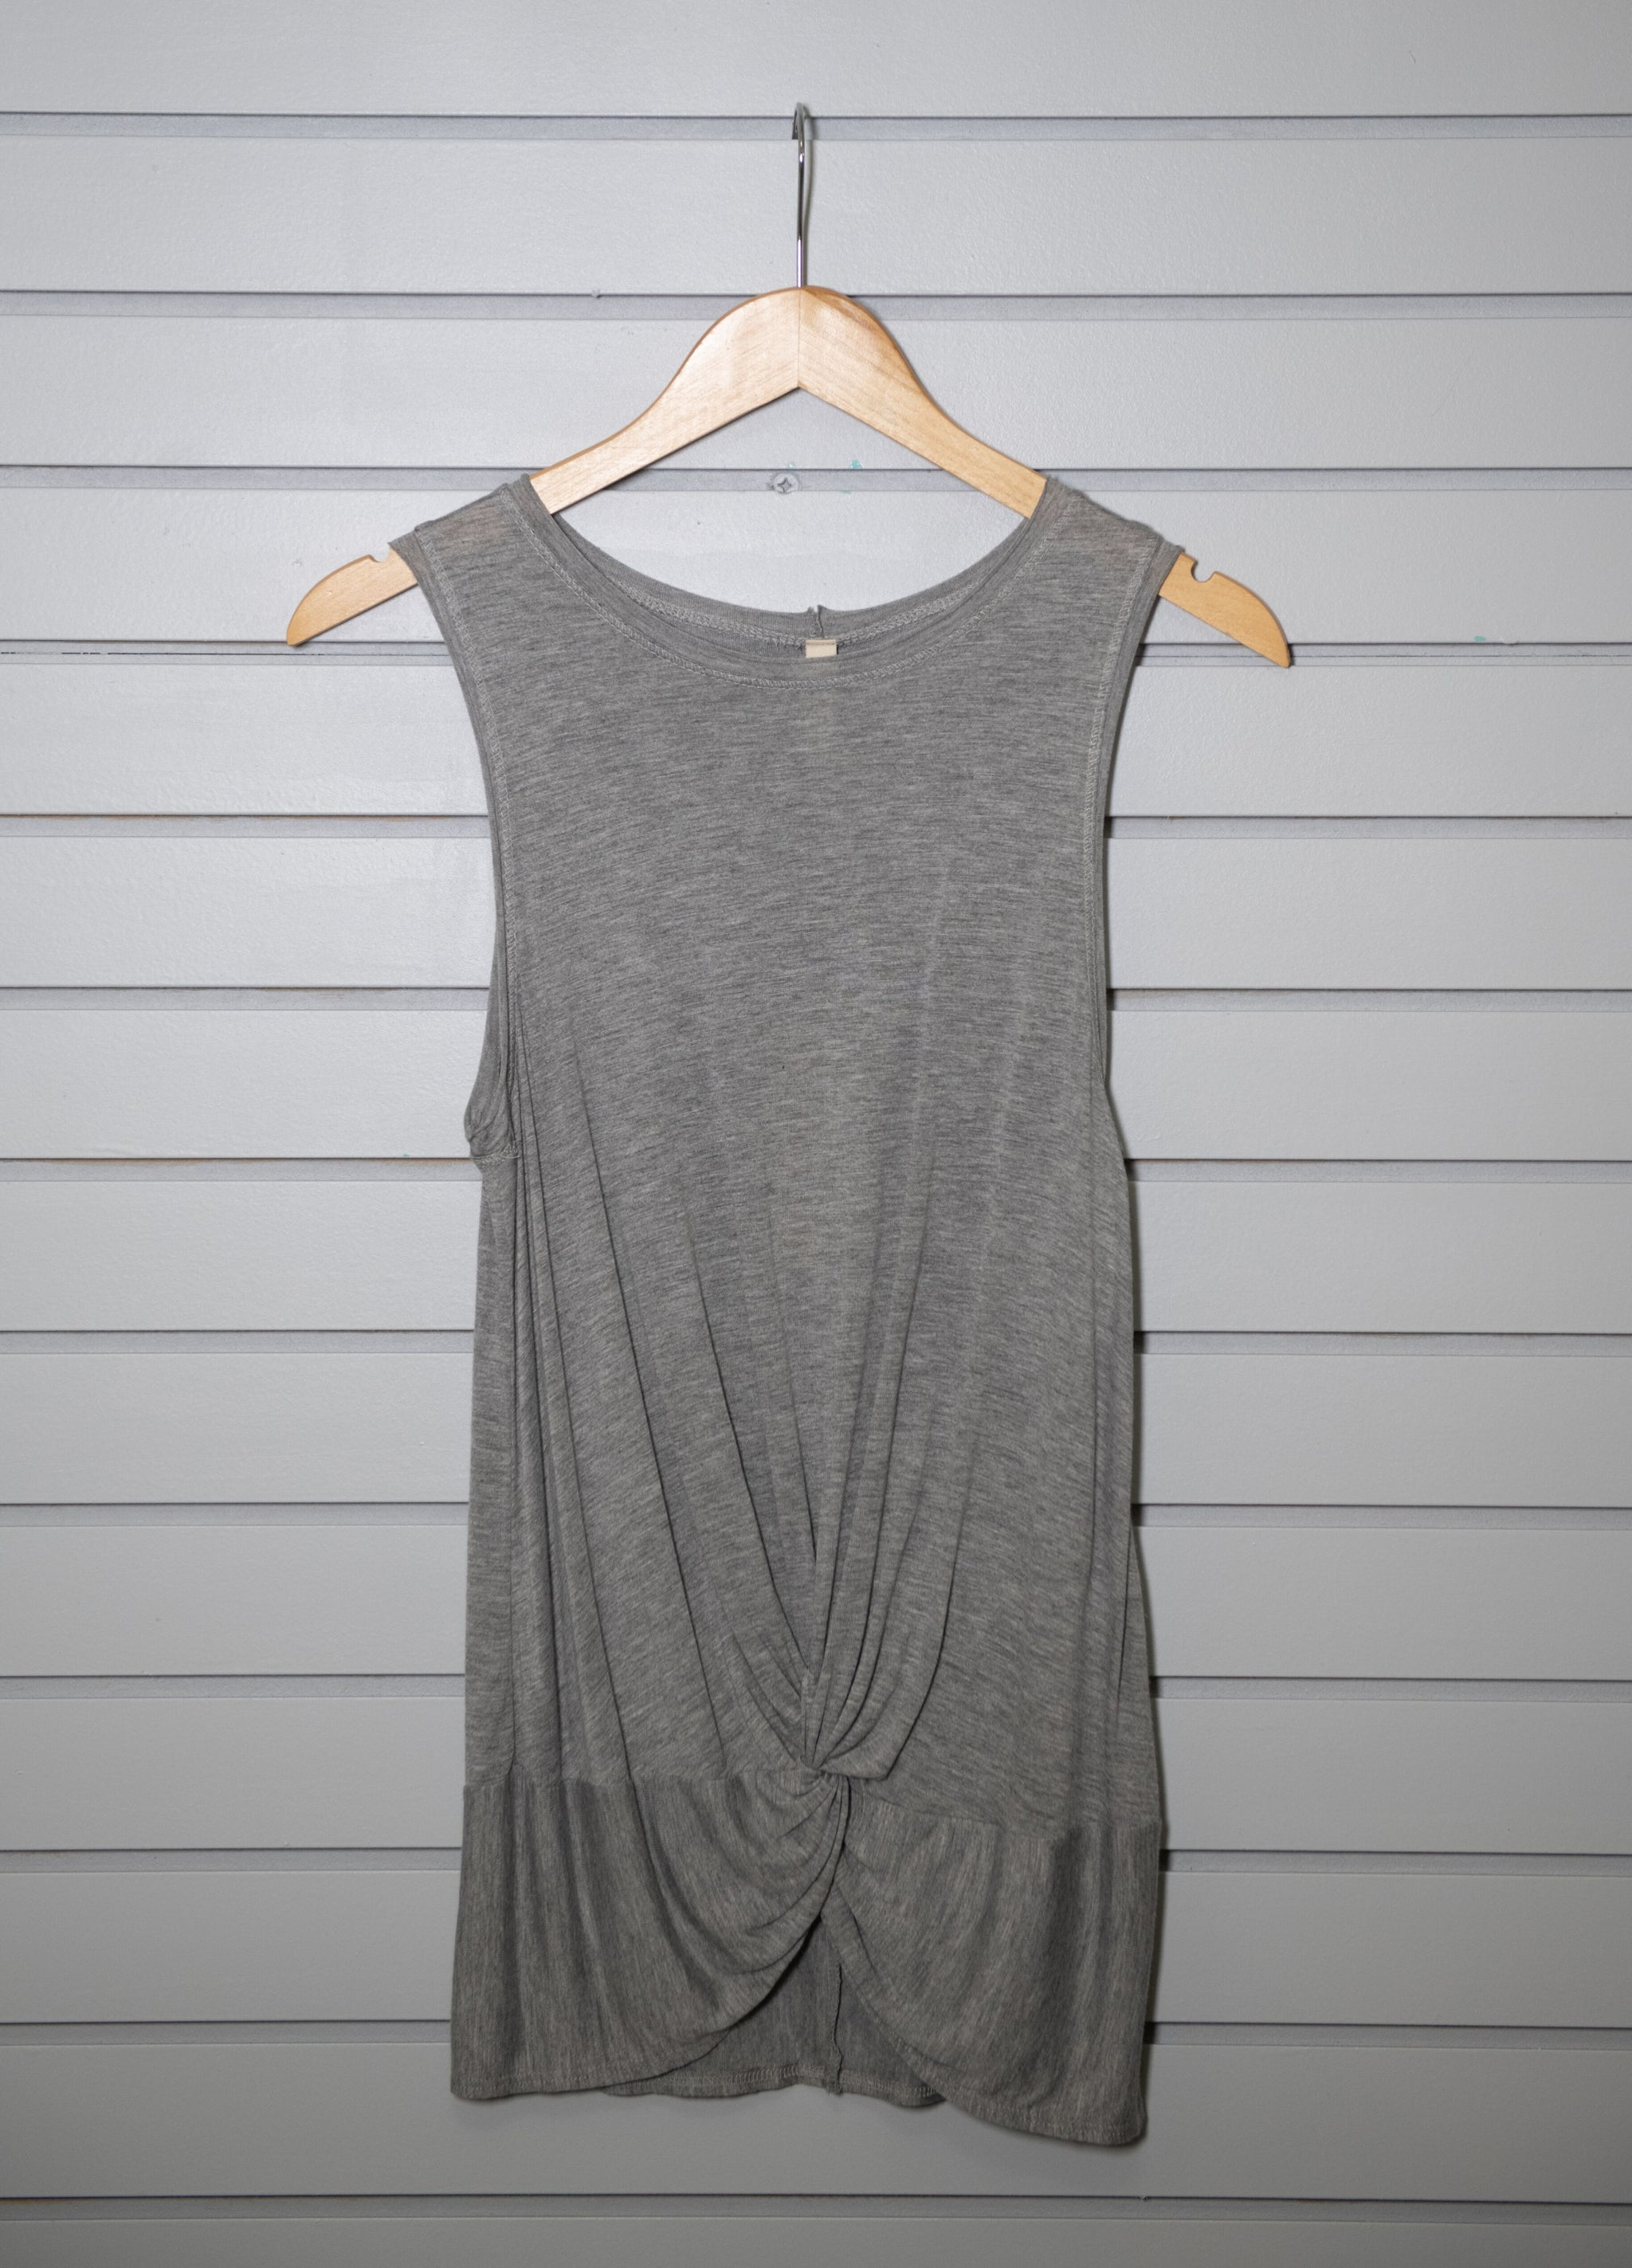 Hailey Twist Top - Medium